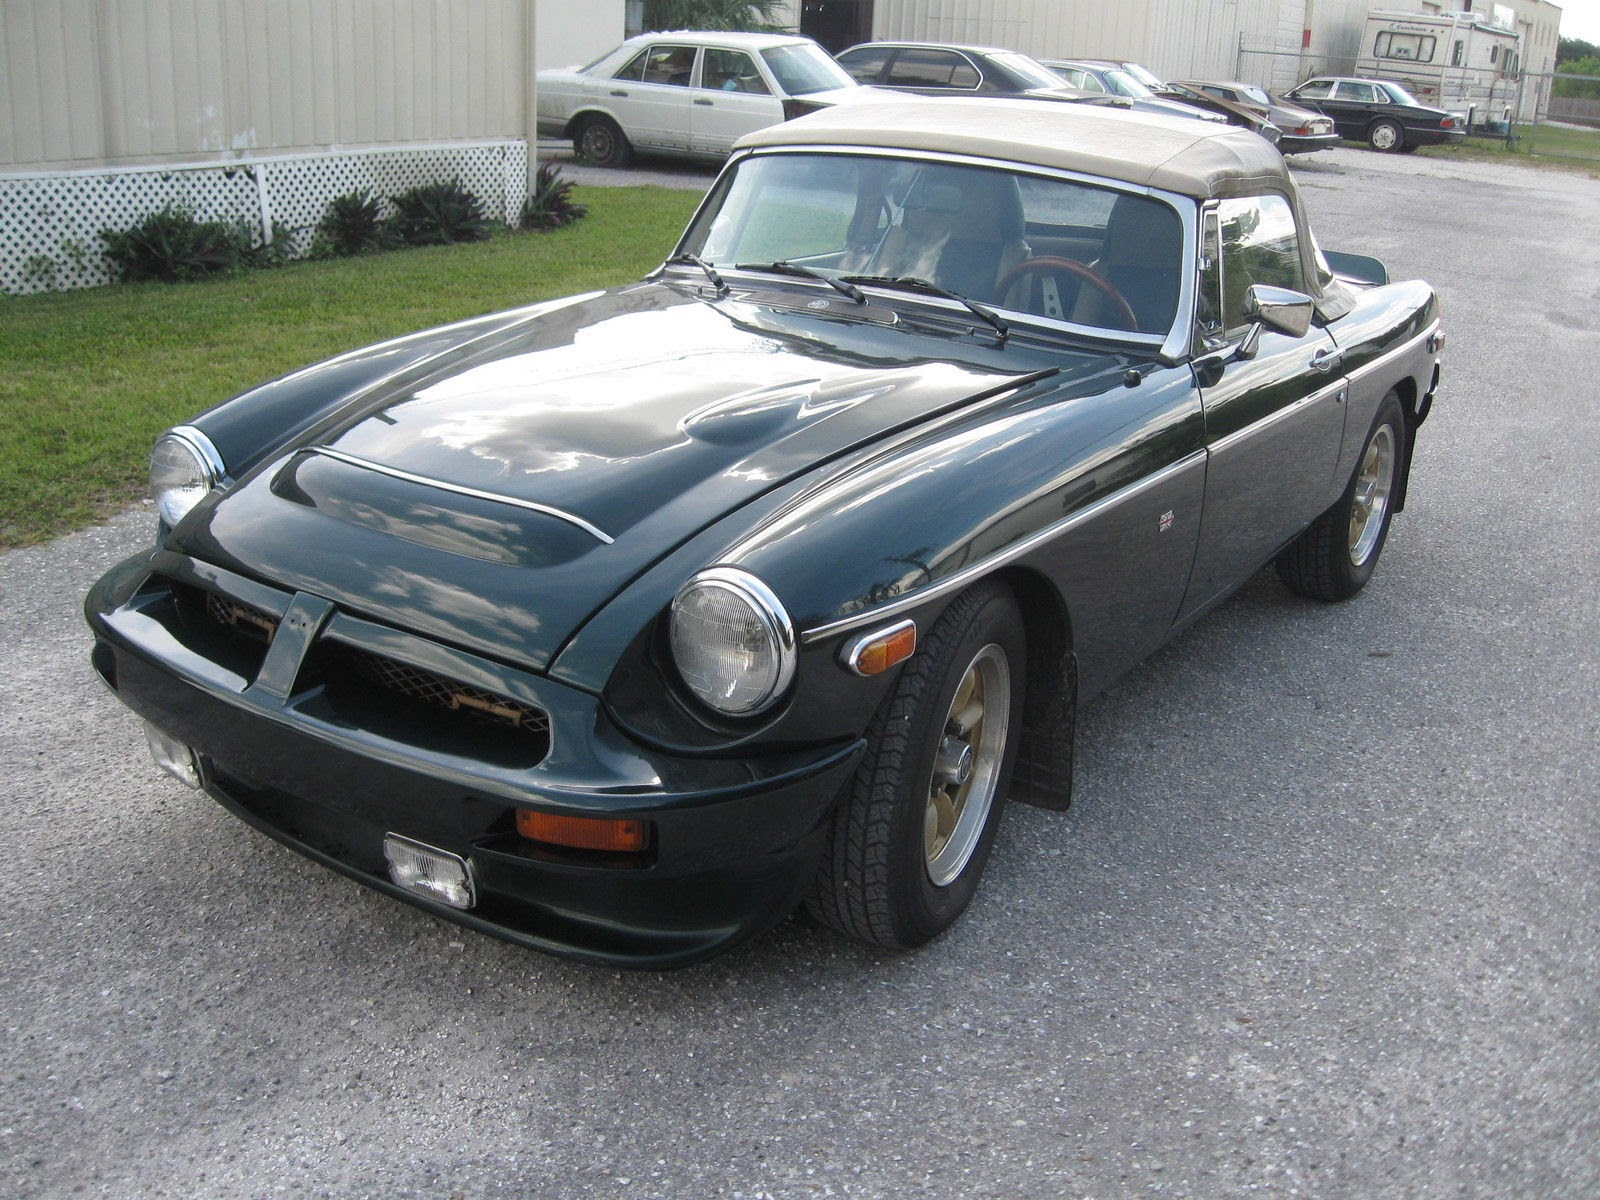 Just A Car Geek: 1976 MGB - You Could Use This As A Daily Driver